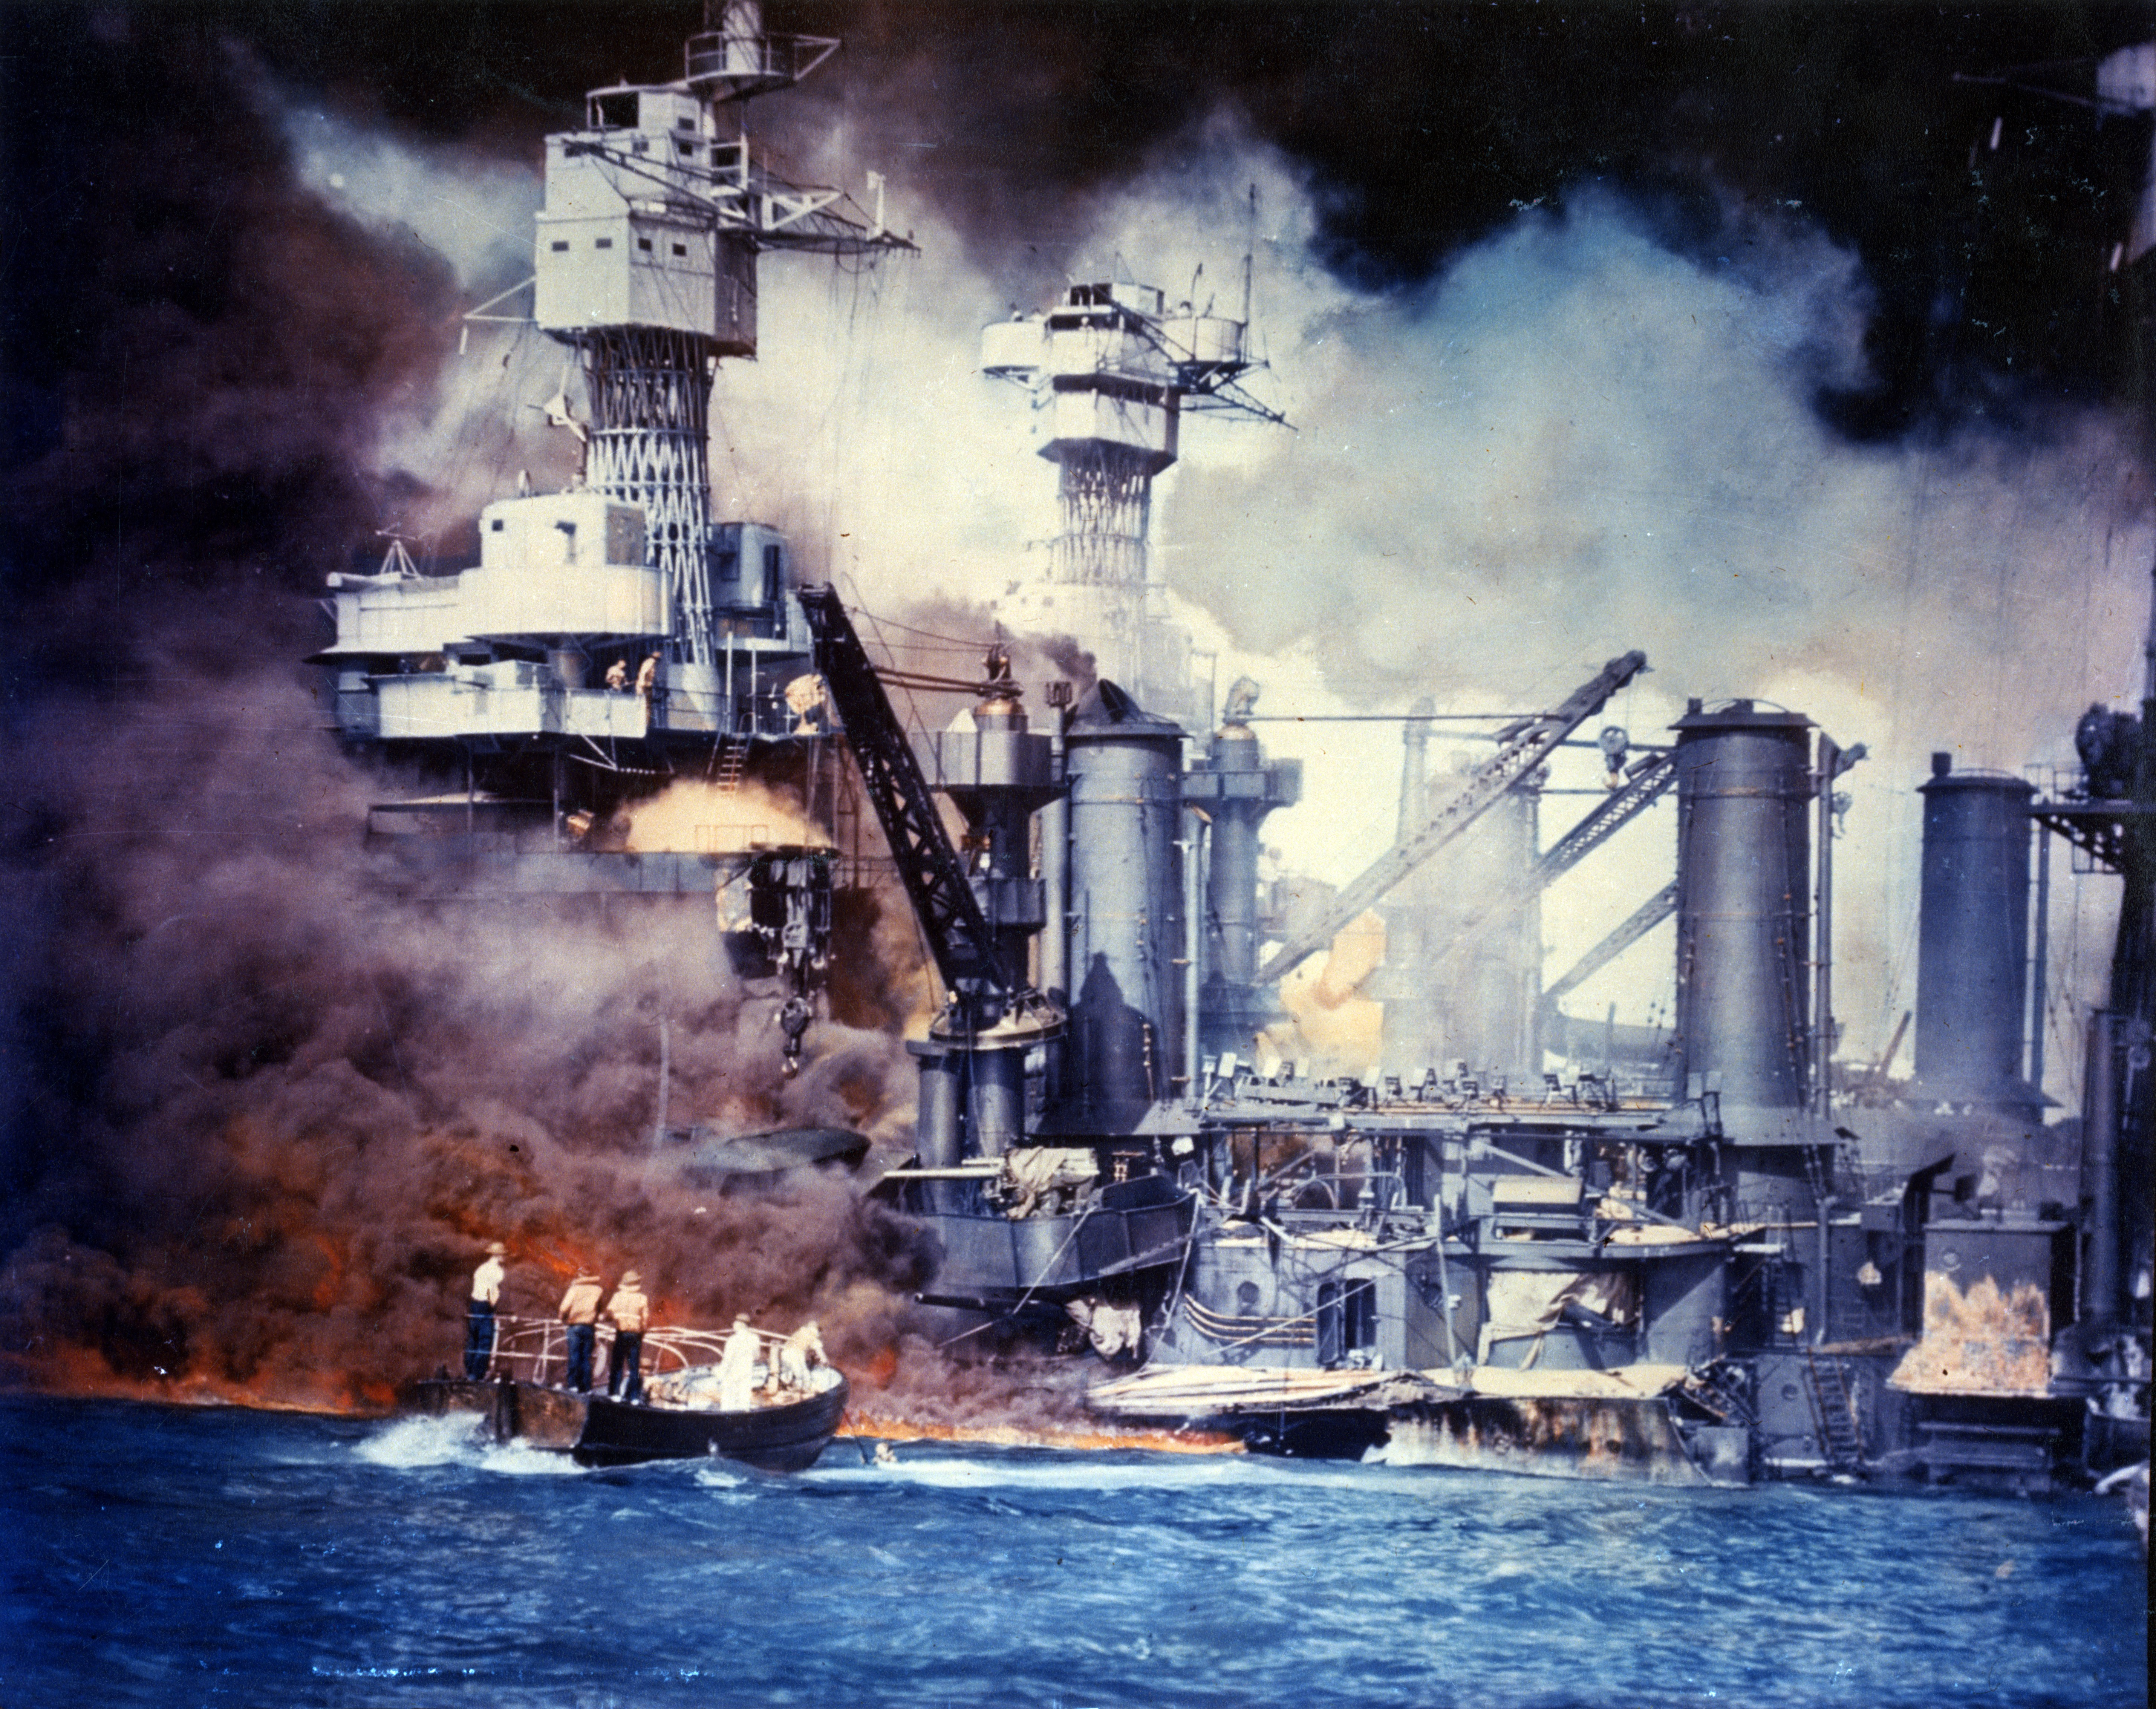 U.S. Navy sailors rescue survivors from the USS West Virginia during the Japanese air raid on Pearl Harbor, 7 December 1941. (Credit: U.S. Navy)